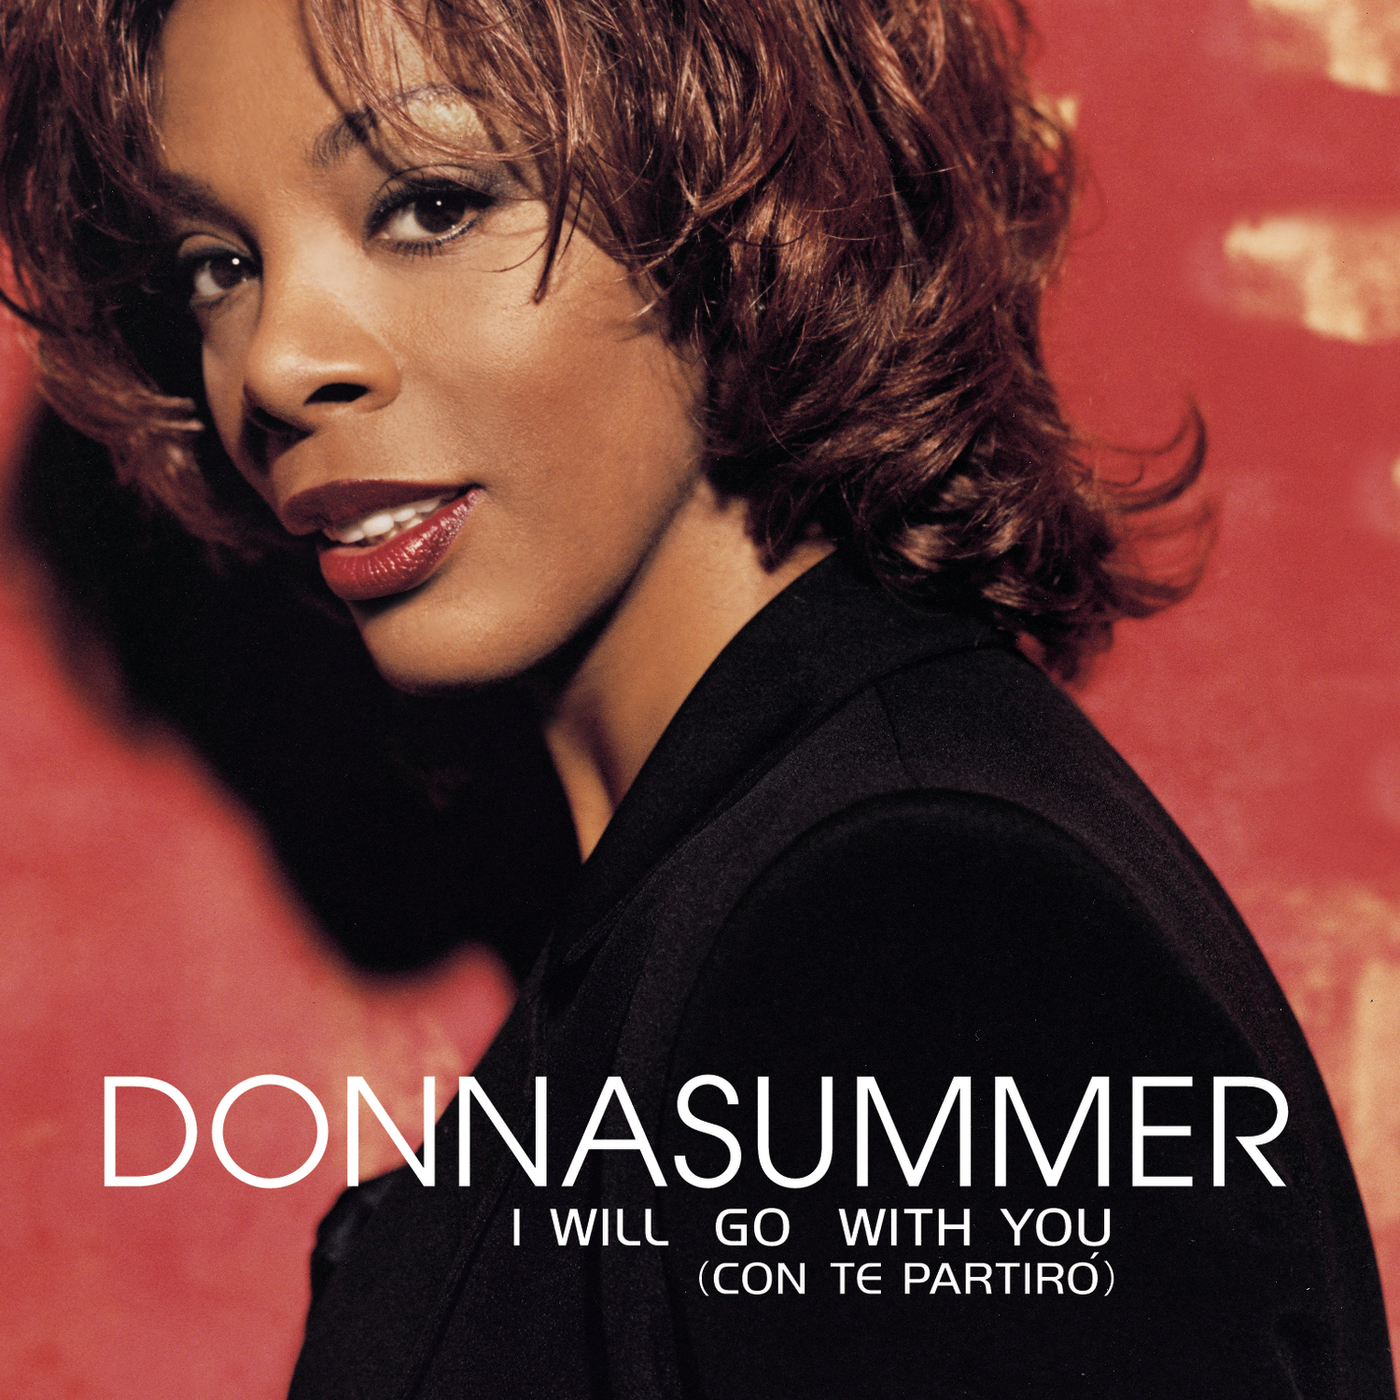 Stream Free Songs by Donna Summer & Similar Artists